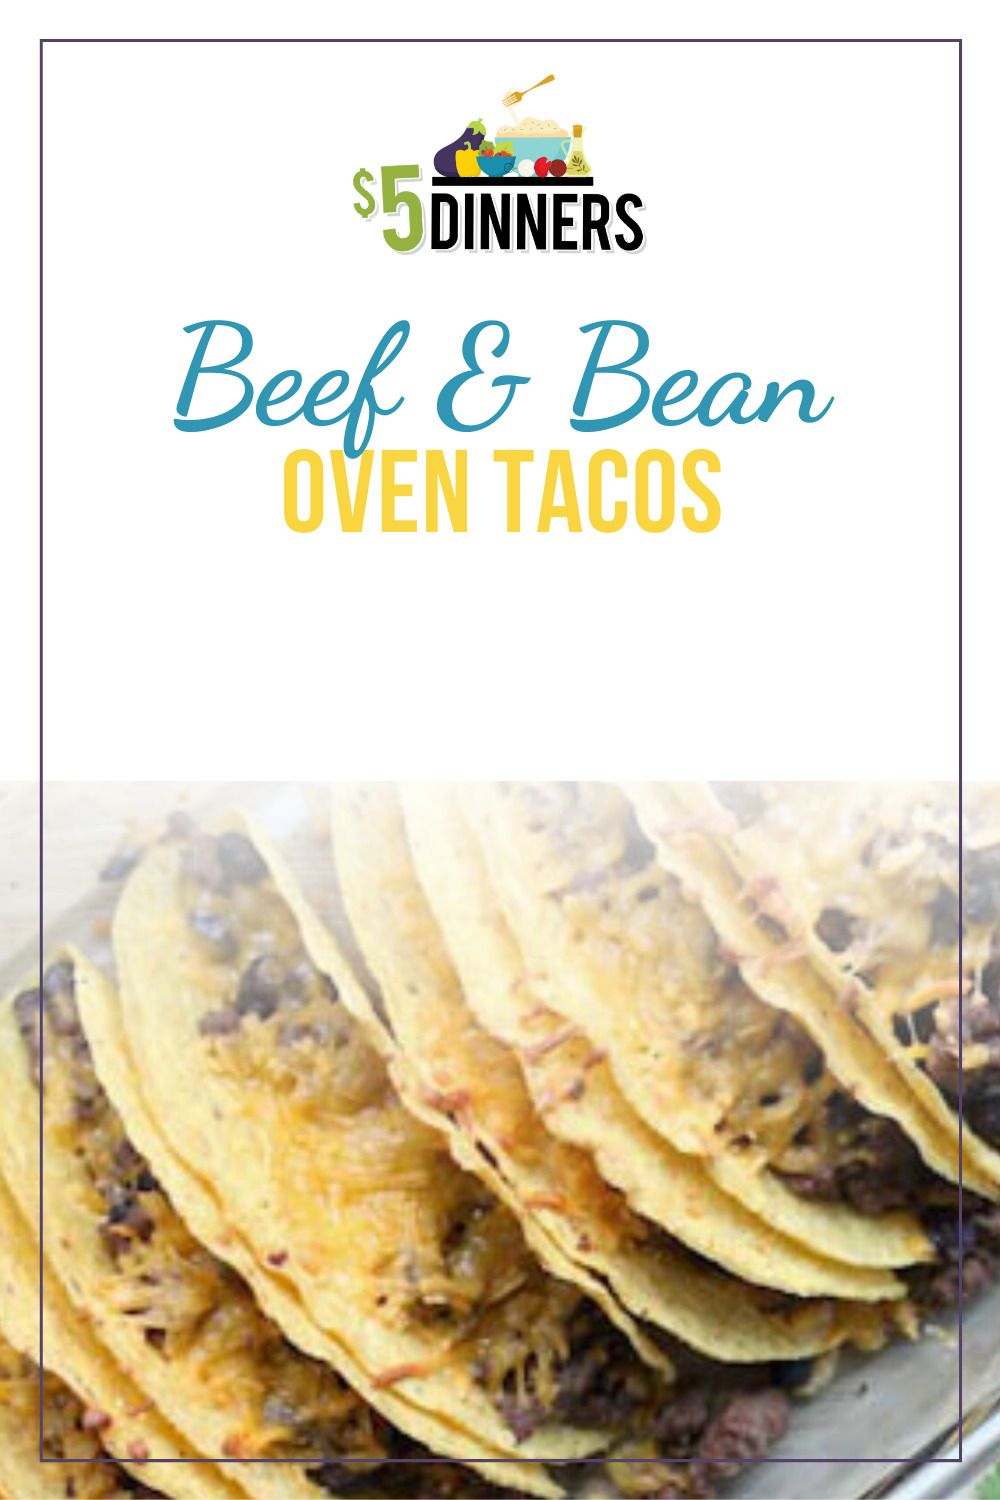 Beef & Bean Oven Tacos Recipe - $5 Dinners | Meal Plans & Recipes